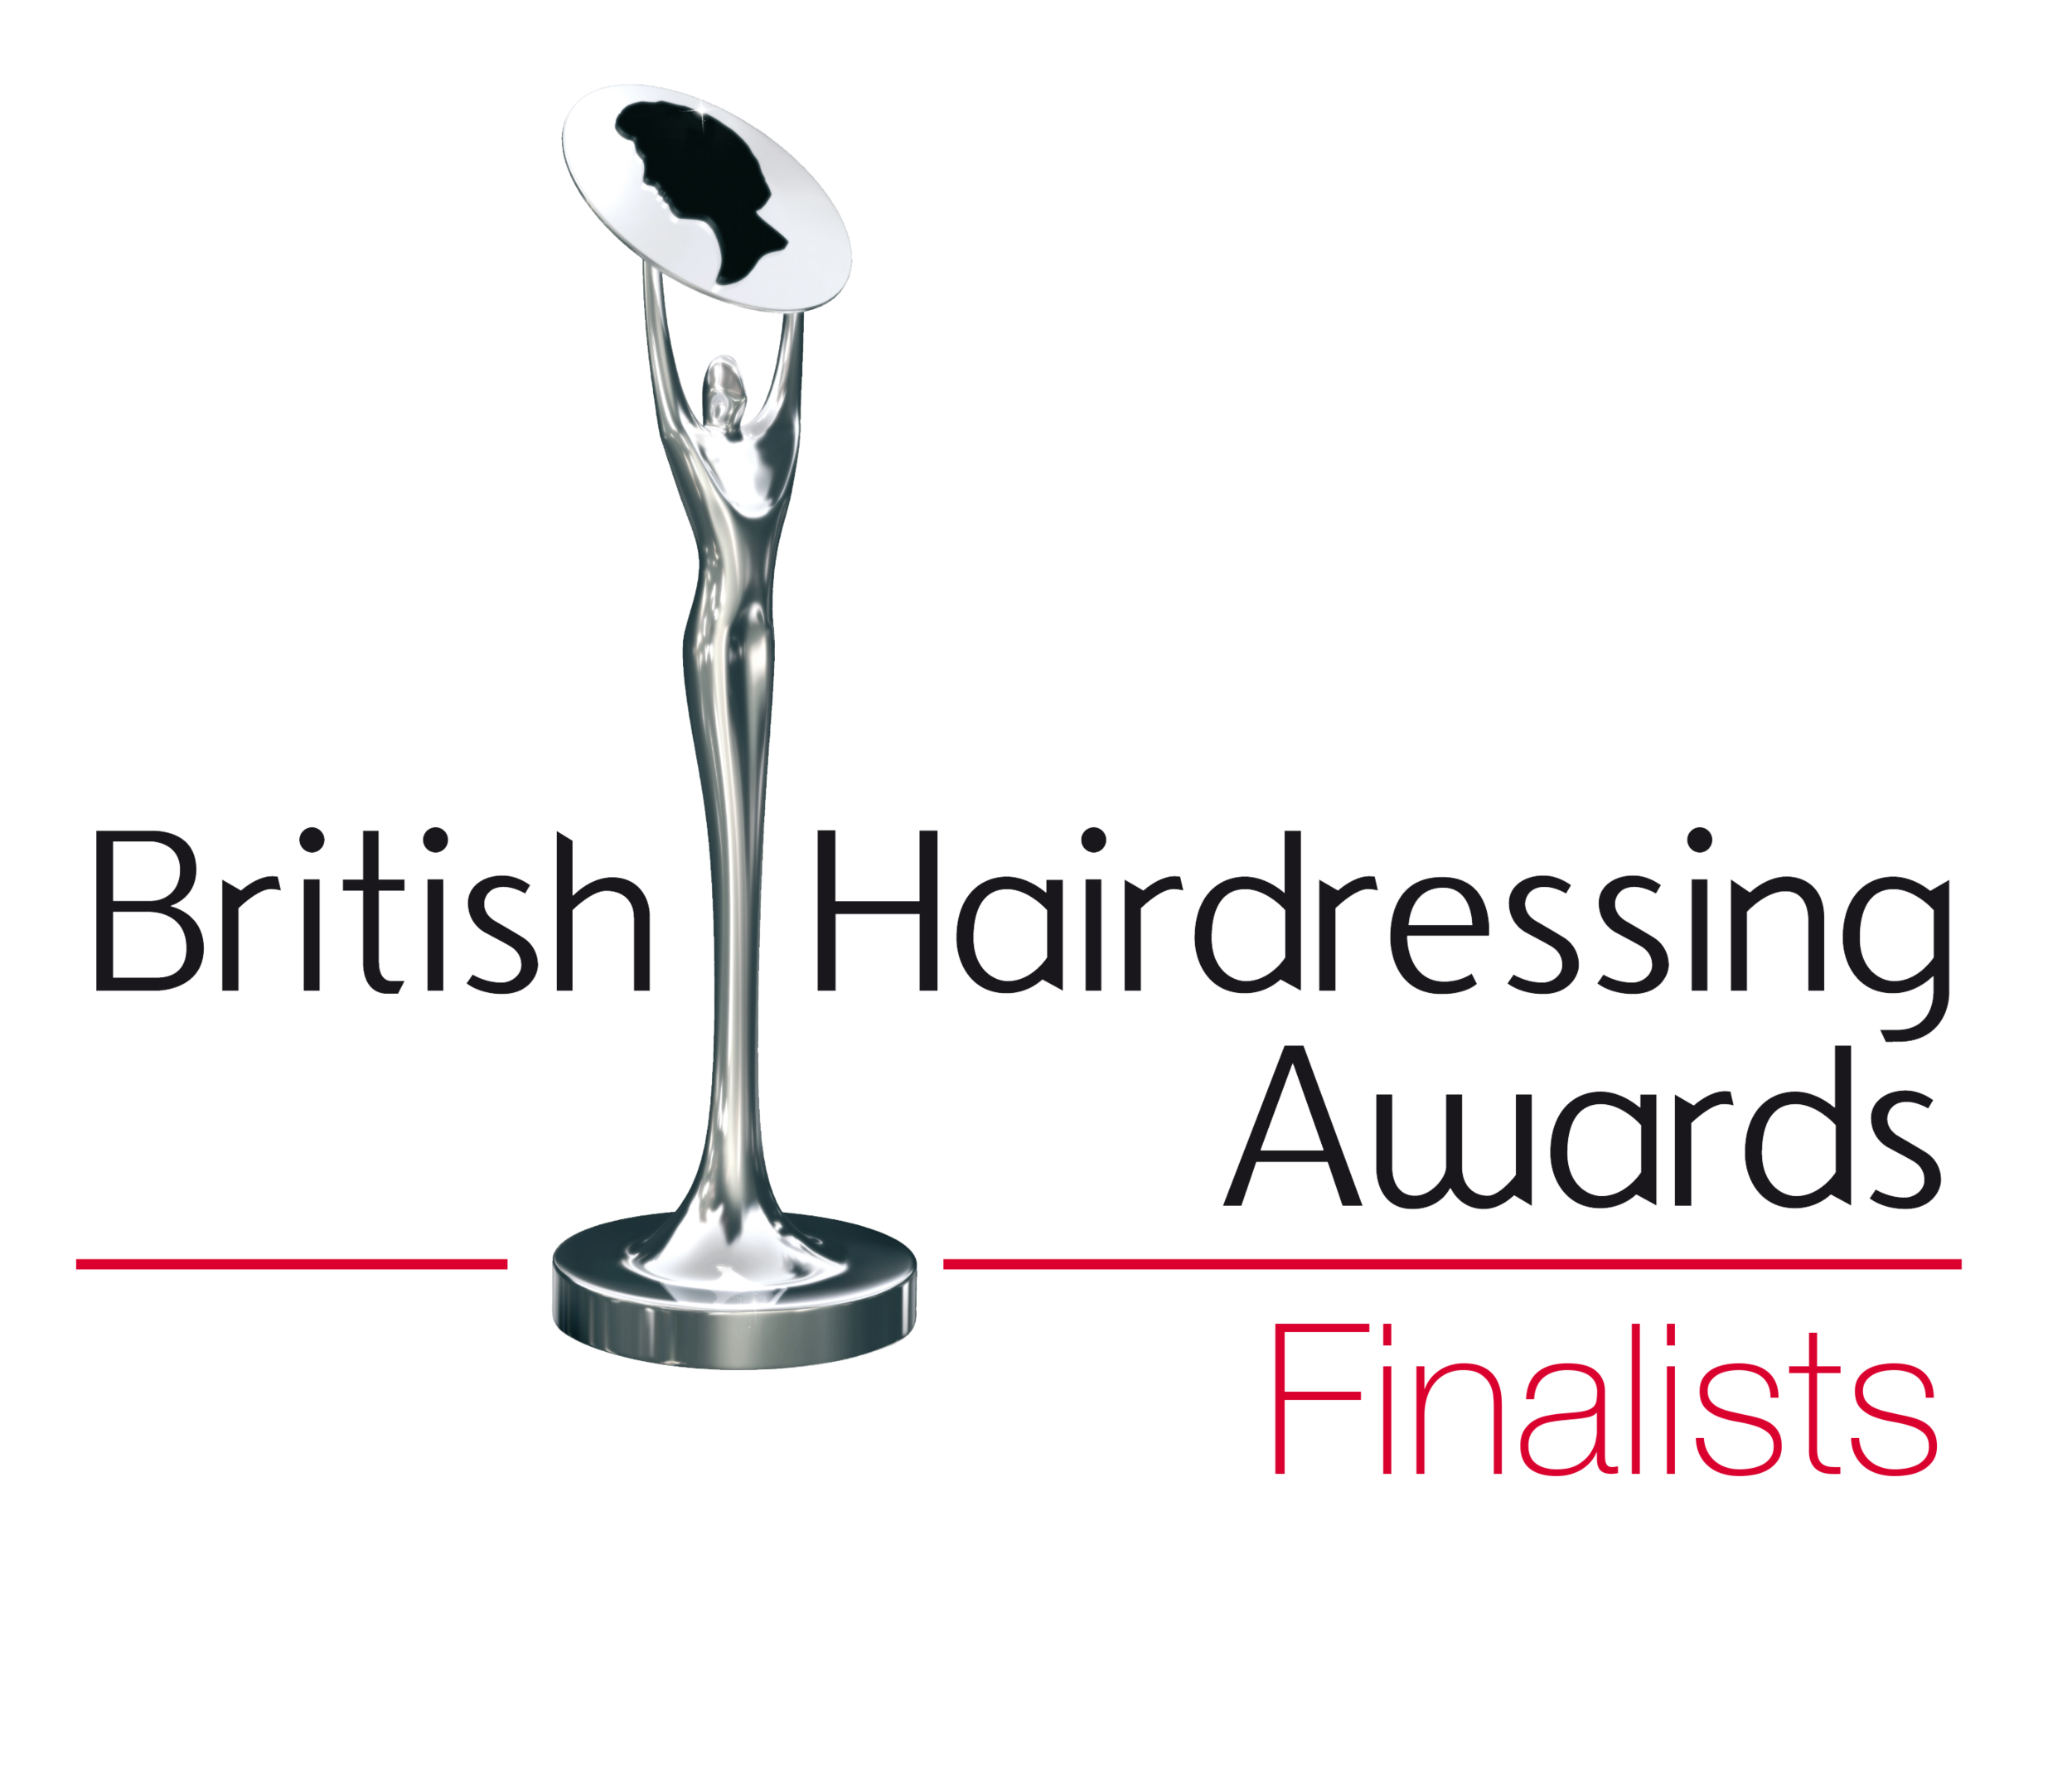 british-hair-dressing-awards.png